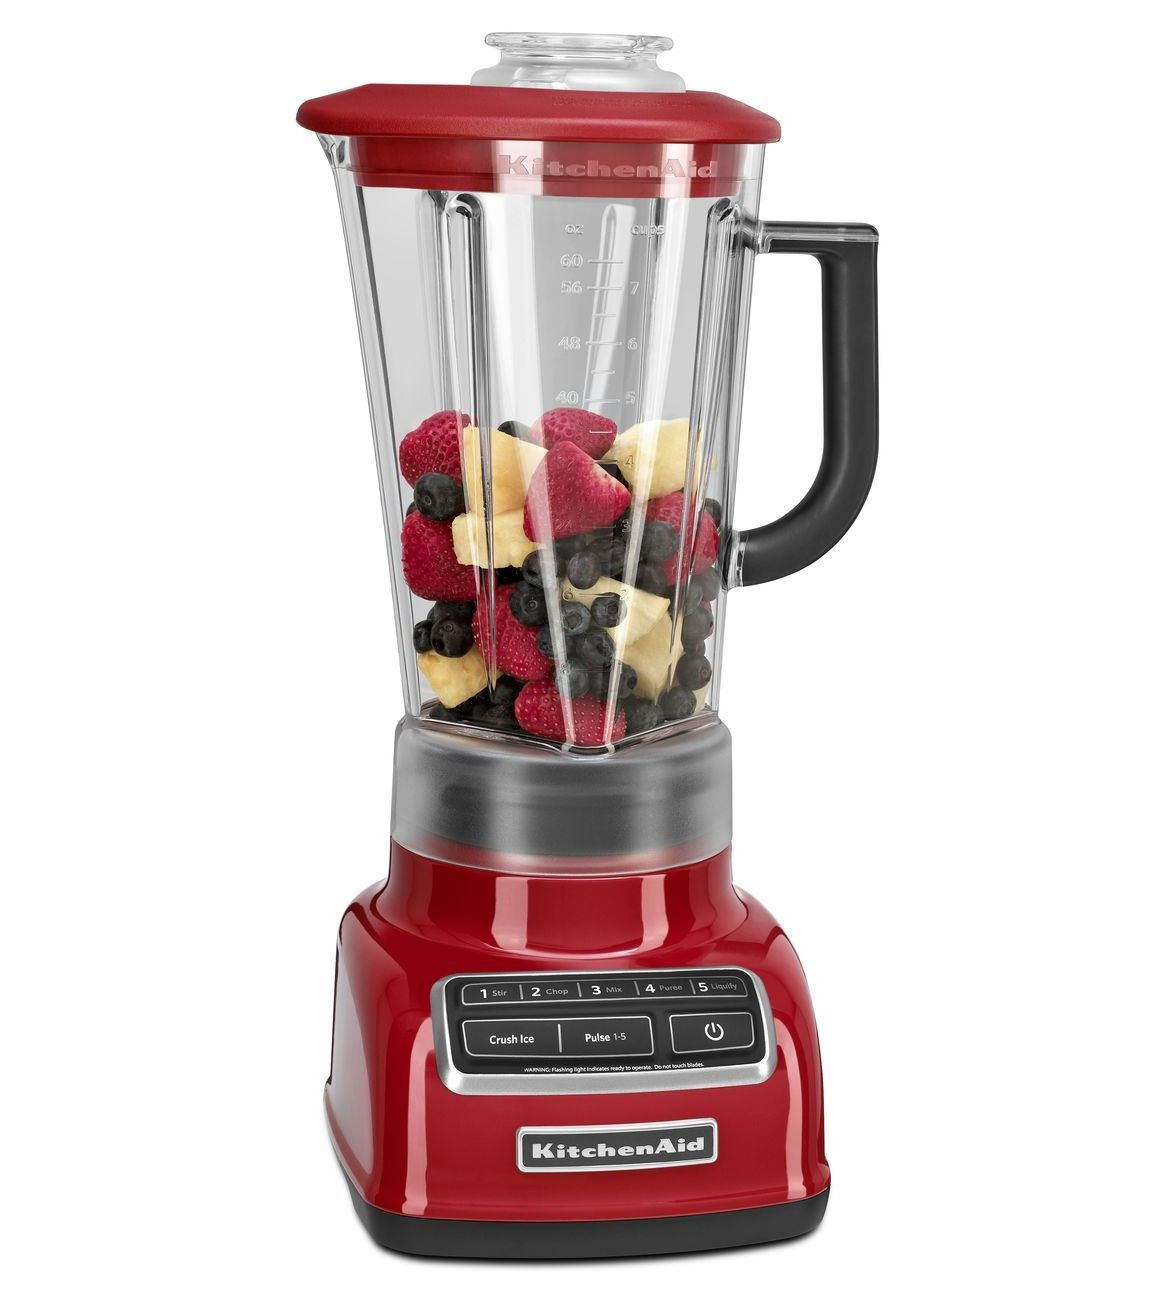 Kitchenaid mixer pink price - Kitchenaid 5 Speed Diamond Blender Ksb1575er Empire Red For All Those